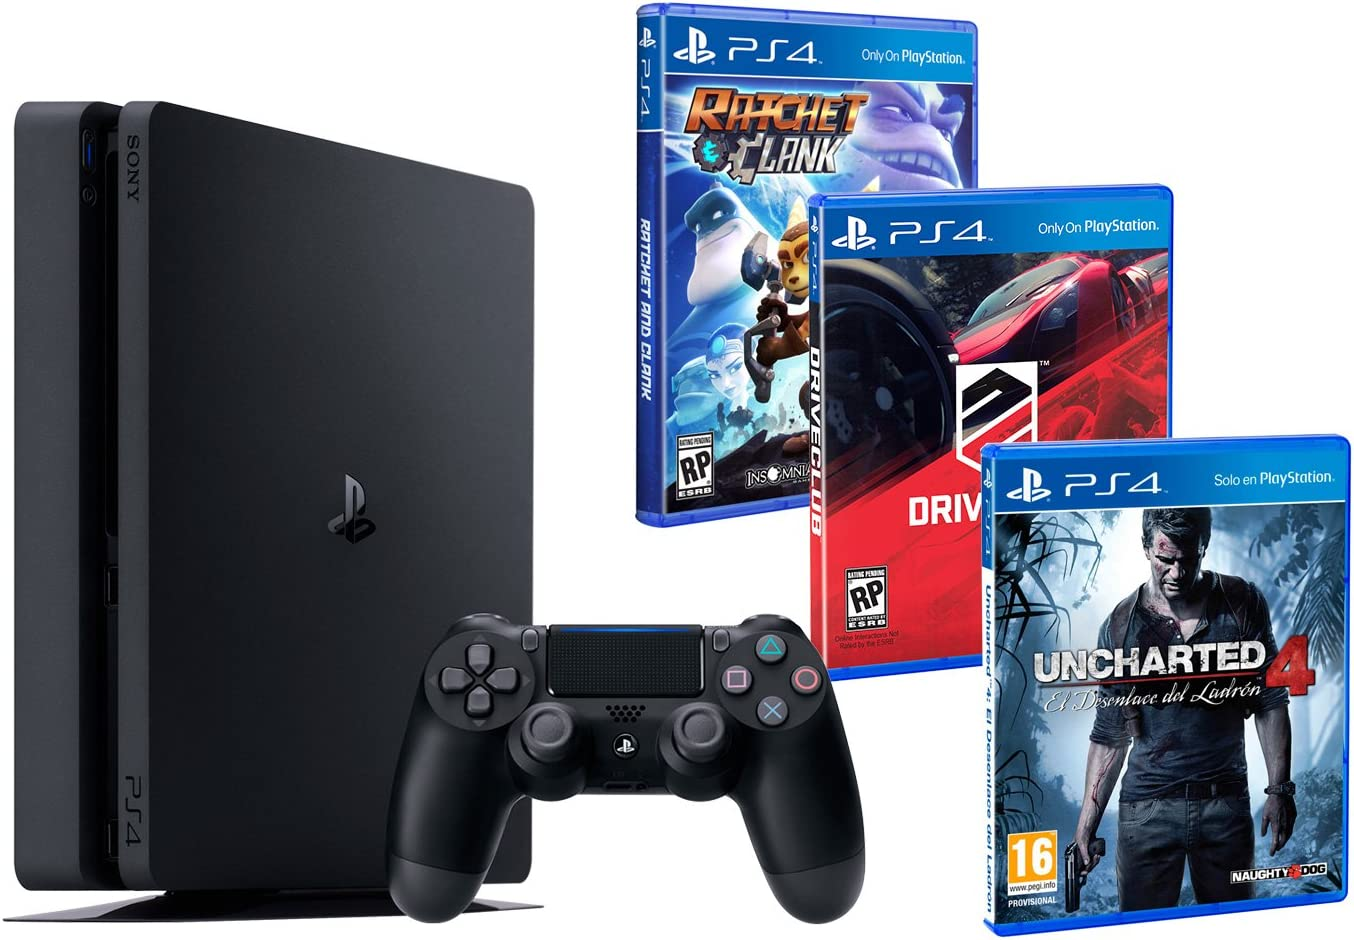 PS4 Slim 1TB PACK FAMILIAR de 3 Juegos: Ratchet & Clank, Uncharted 4, Driveclub: Amazon.es: Videojuegos